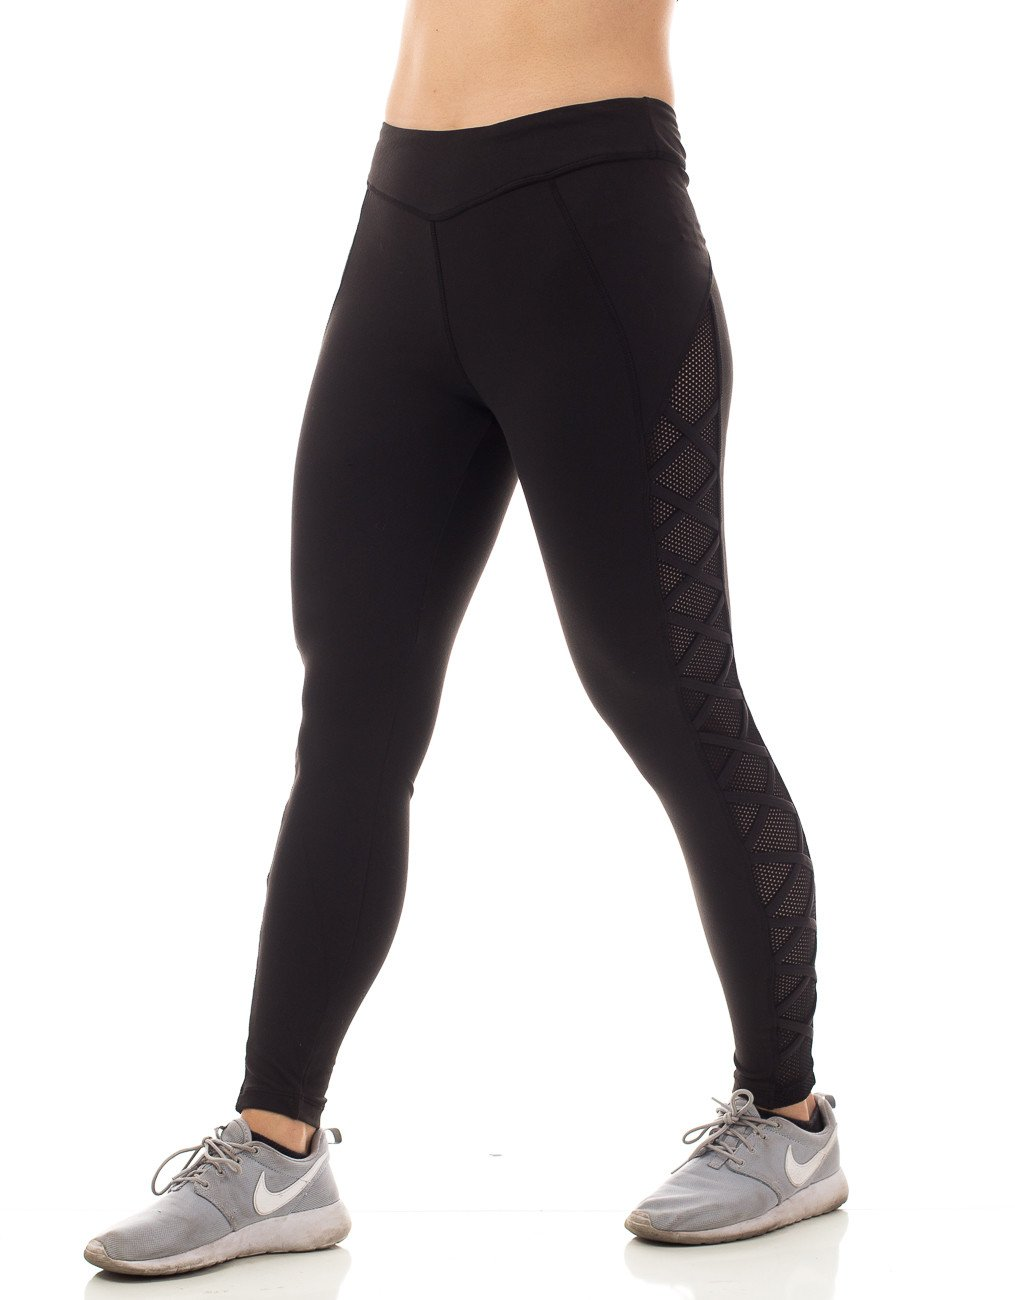 Figur Activ Full Yoga Legging with Side Criss Cross Mesh Style with V Front